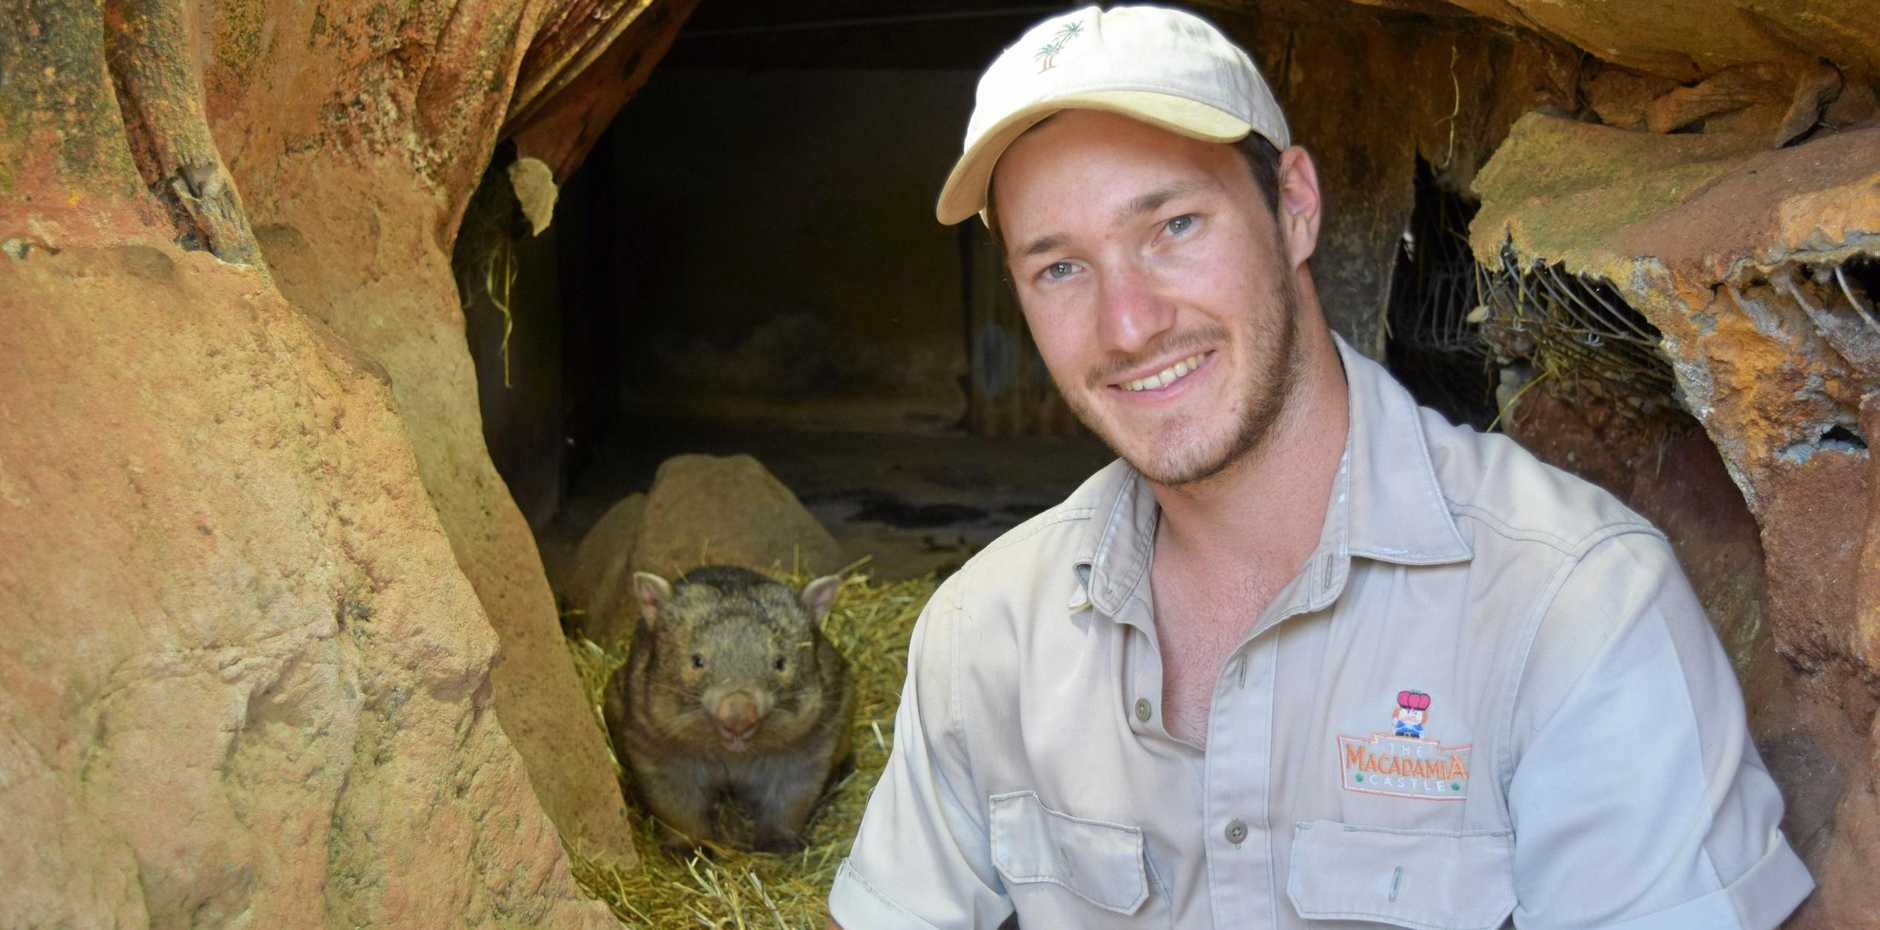 Manda in her new den at the Macadamia Castle with keeper James Kelly.